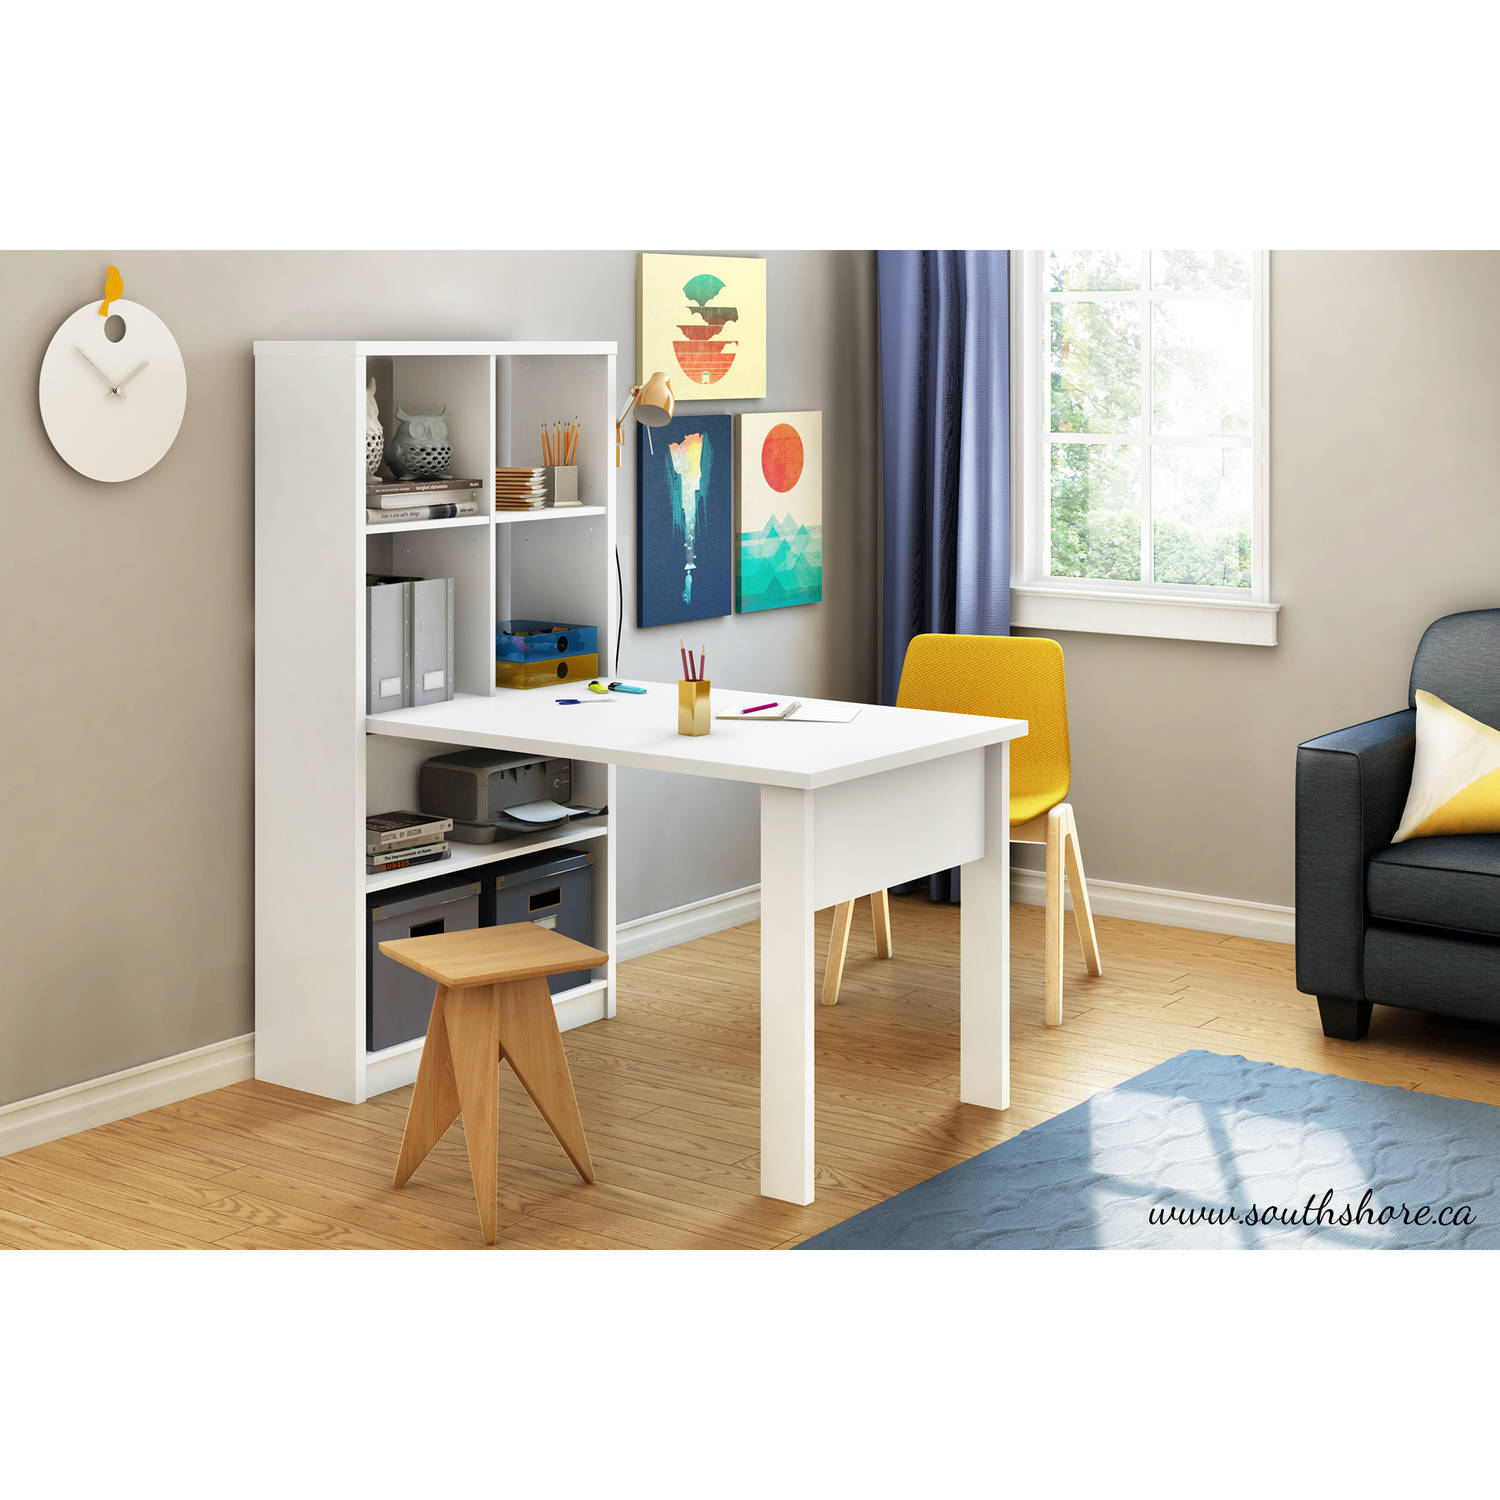 Perfect South Shore Annexe Craft Table And Storage Unit Combo, Multiple Finishes    Walmart.com